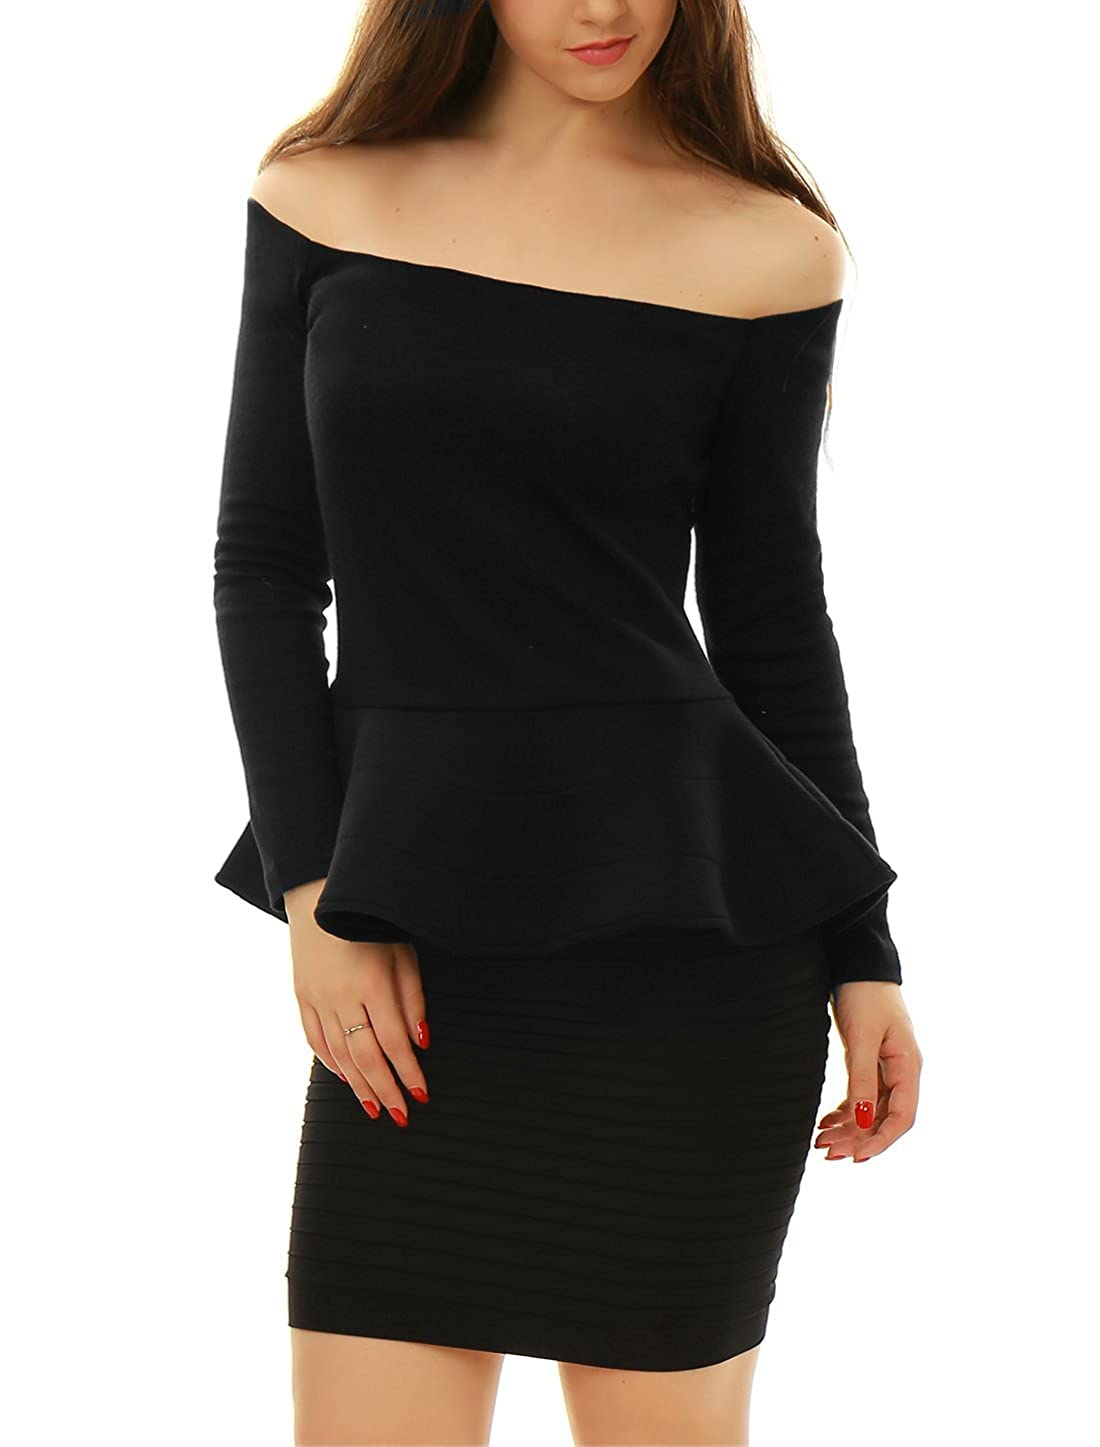 3aa66fa0f52cbc Allegra K Women s Off Shoulder Long Sleeves Slim Fit Peplum Top at Amazon  Women s Clothing store